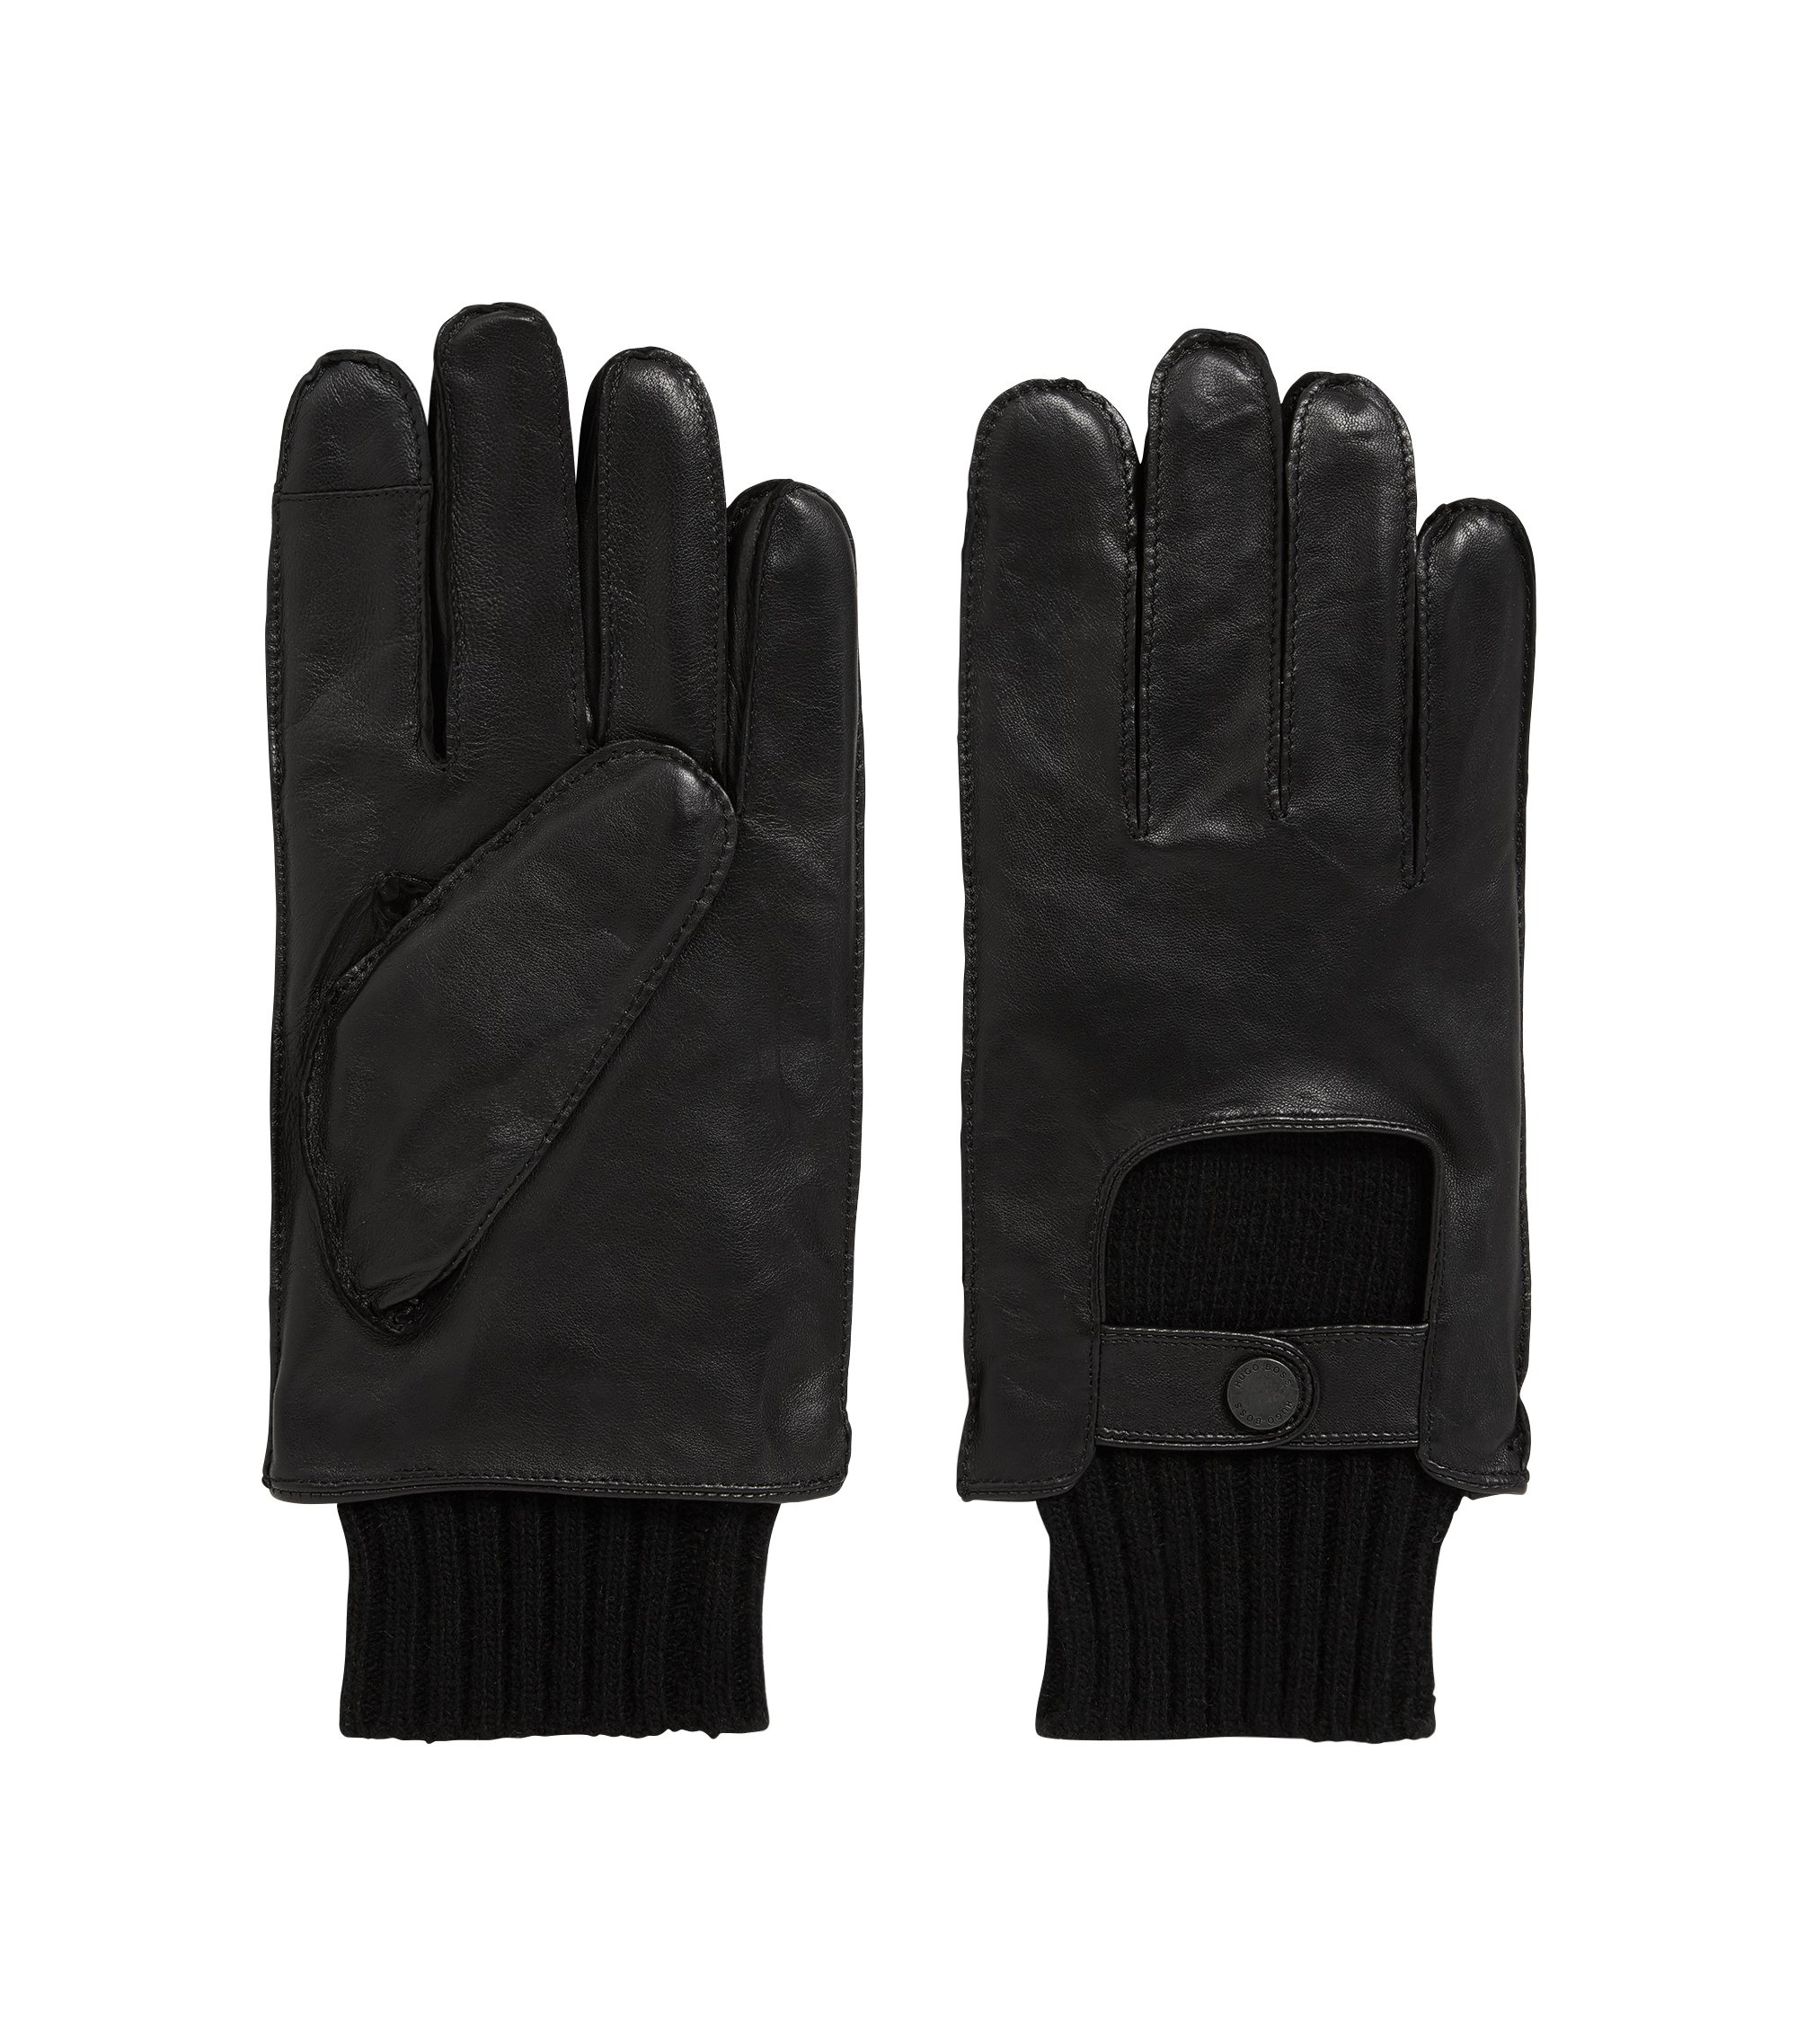 Nappa Leather & Wool Blend Knit Tech Touch Glove | T-Herkan TT, Black